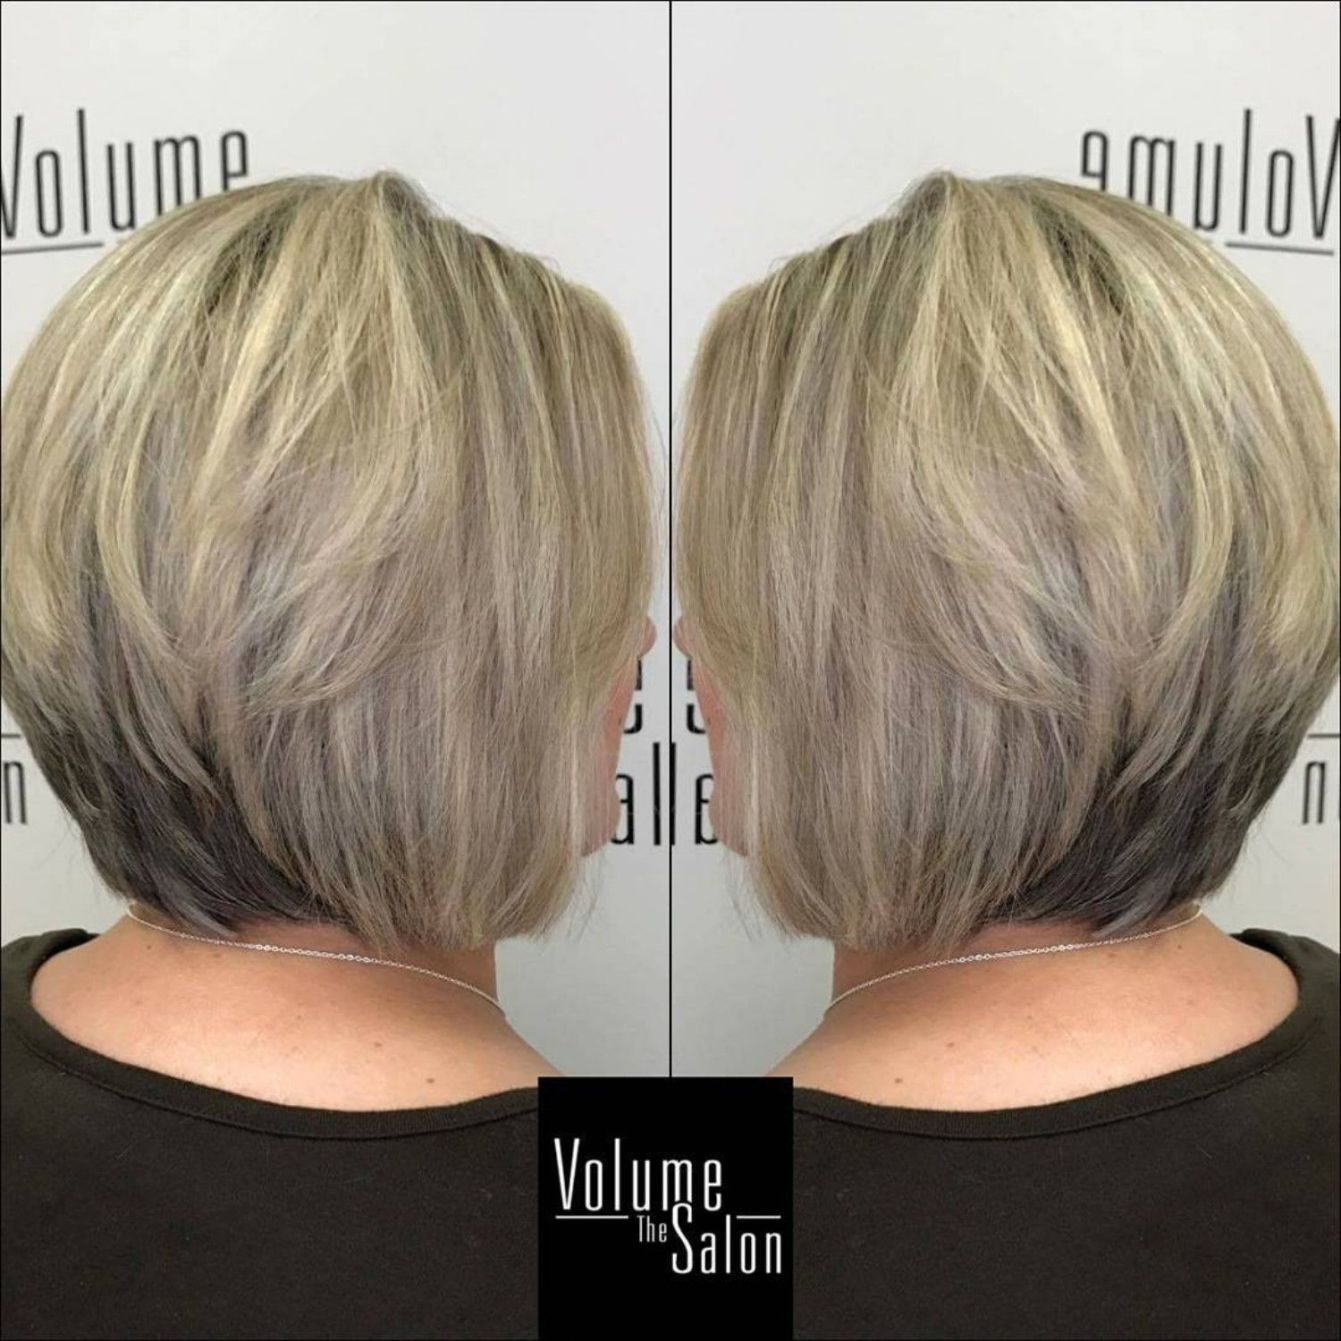 90 Classy And Simple Short Hairstyles For Women Over 50 Hair Styles Short Hair Styles Womens Hairstyles